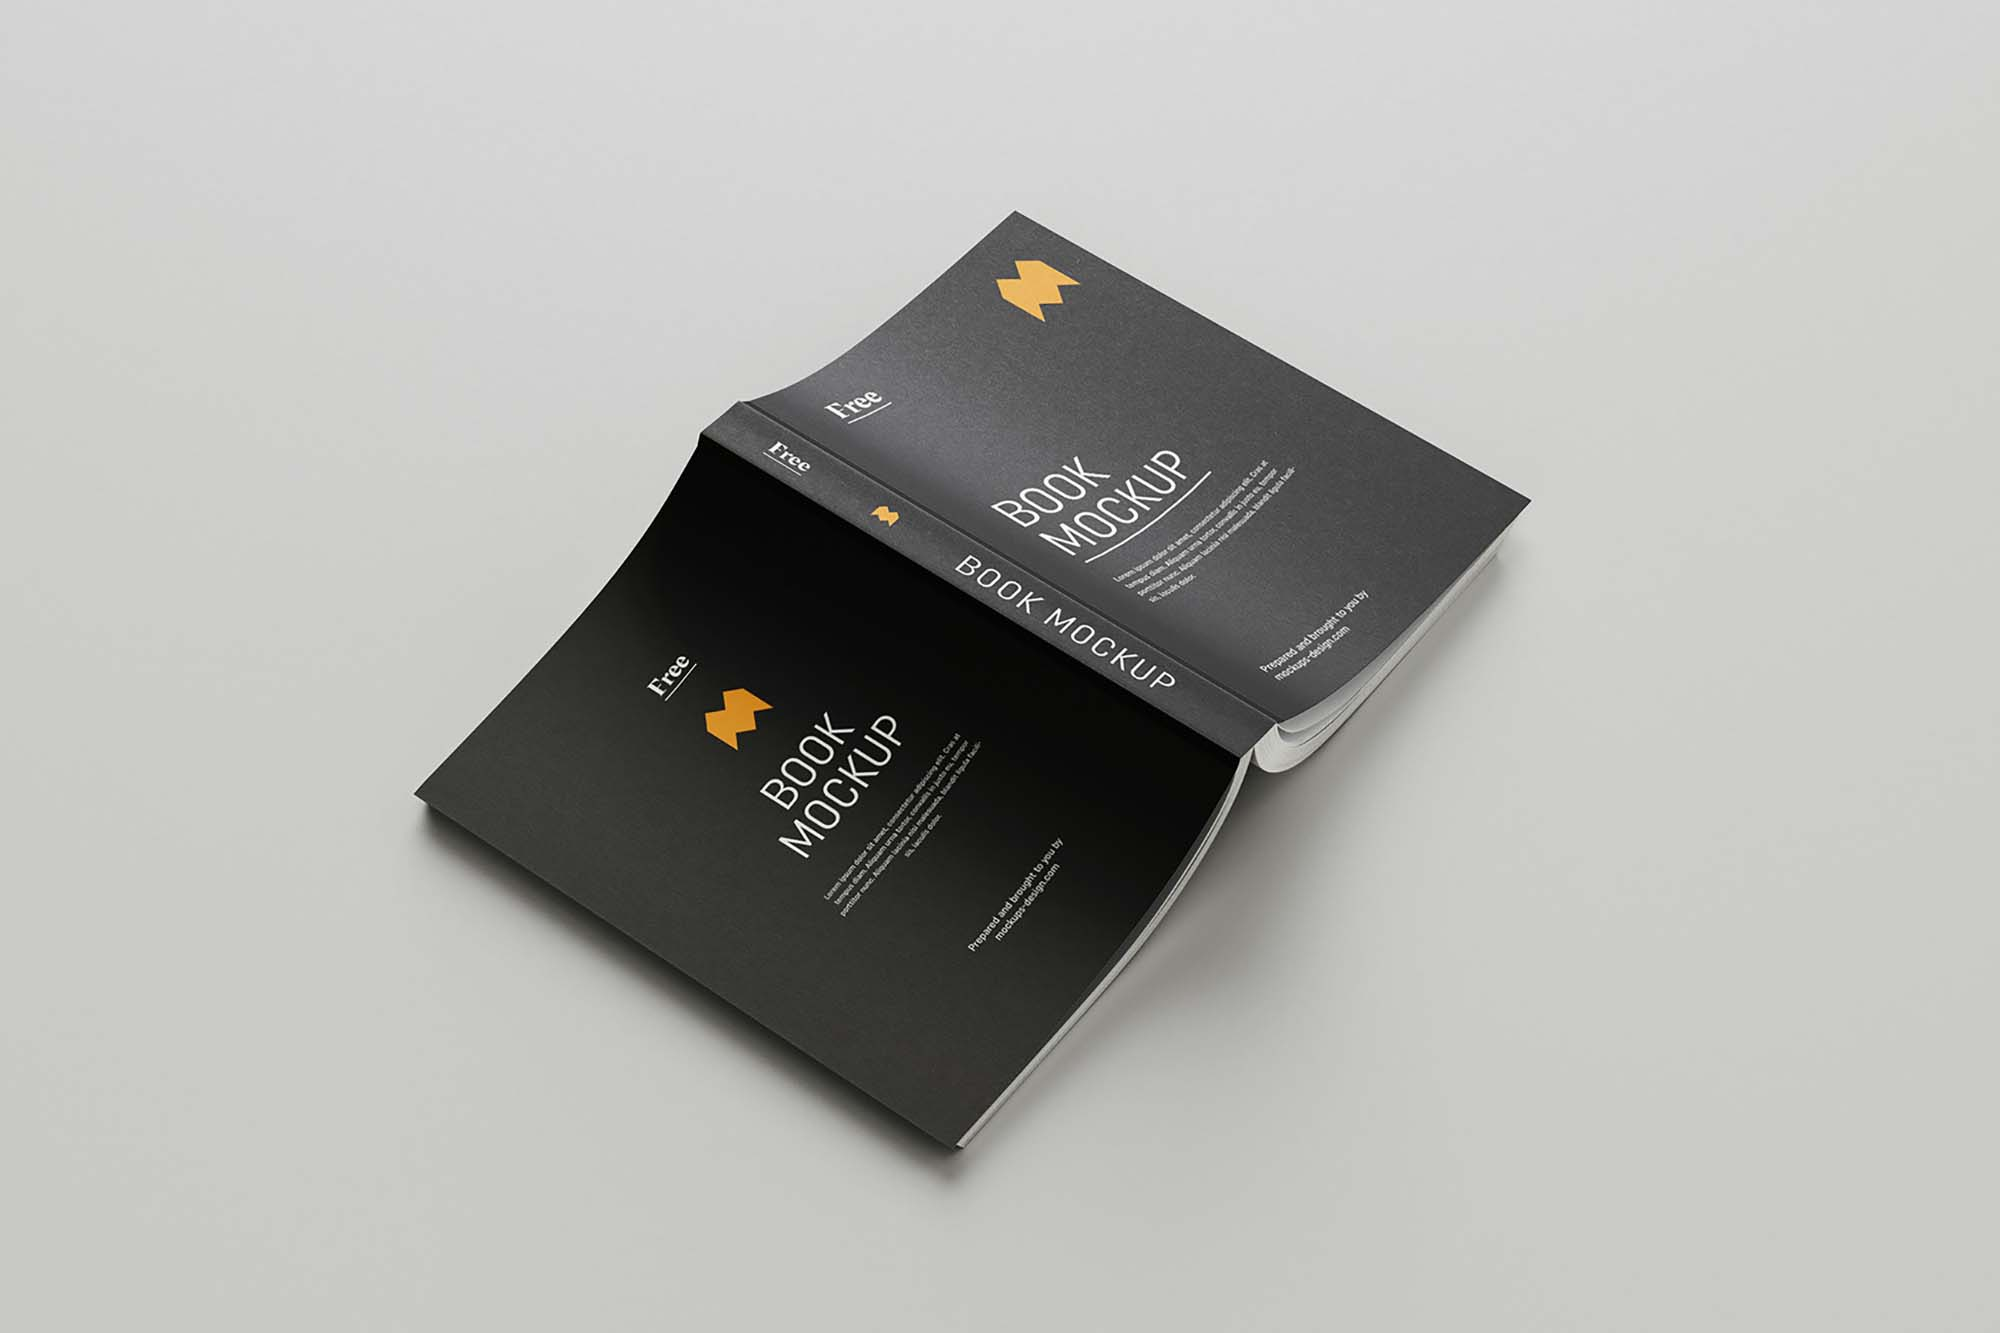 Softcover Book Mockup 7